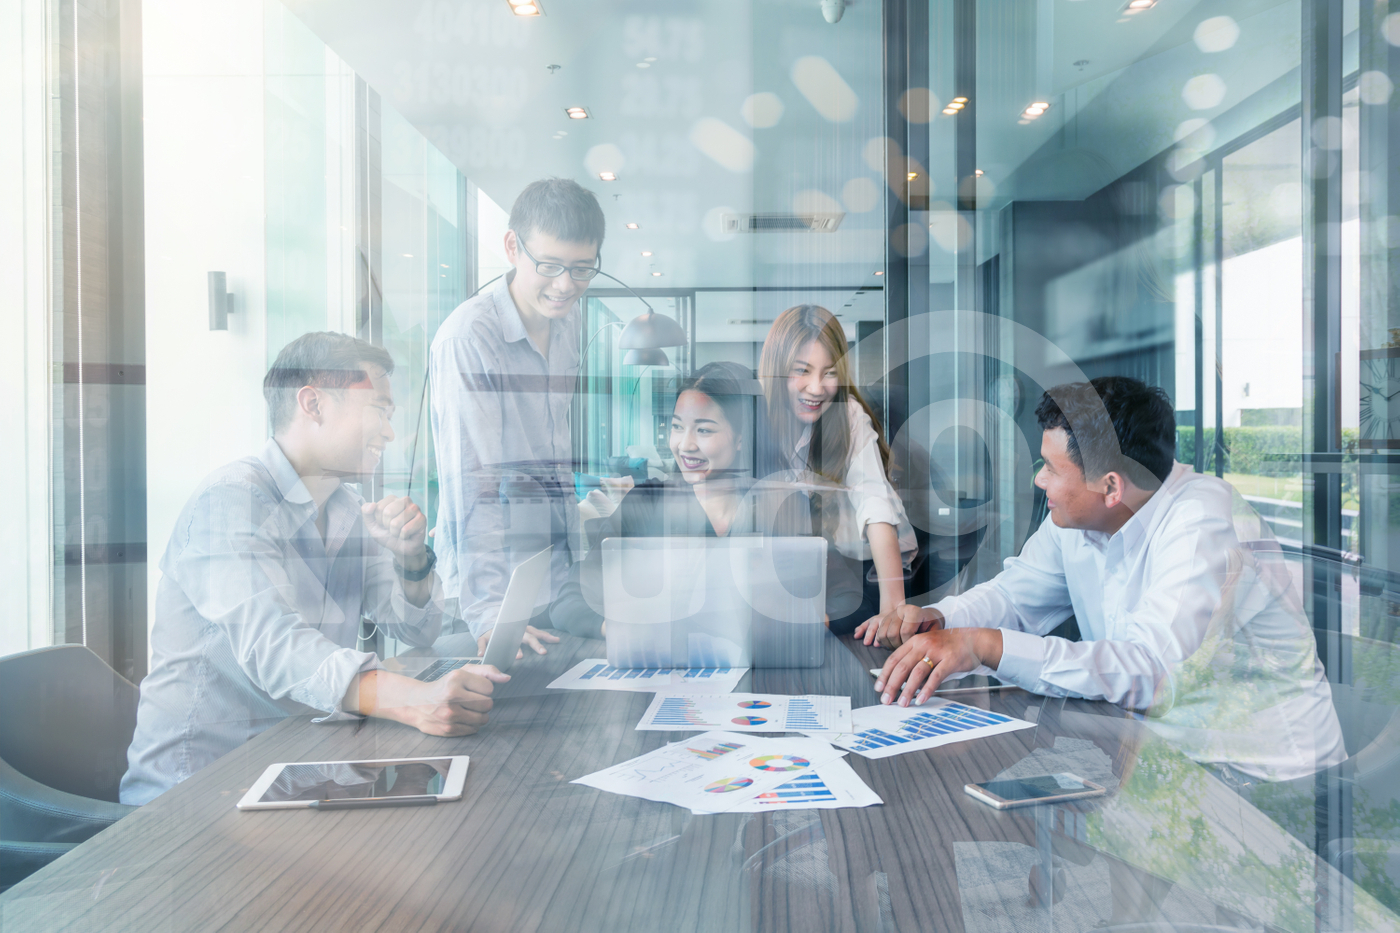 Group Of Asian and Multi ethnic Business people with casual suit working and brainstorming together with technology computer in the modern Office, people business group and entrepreneurship concept.